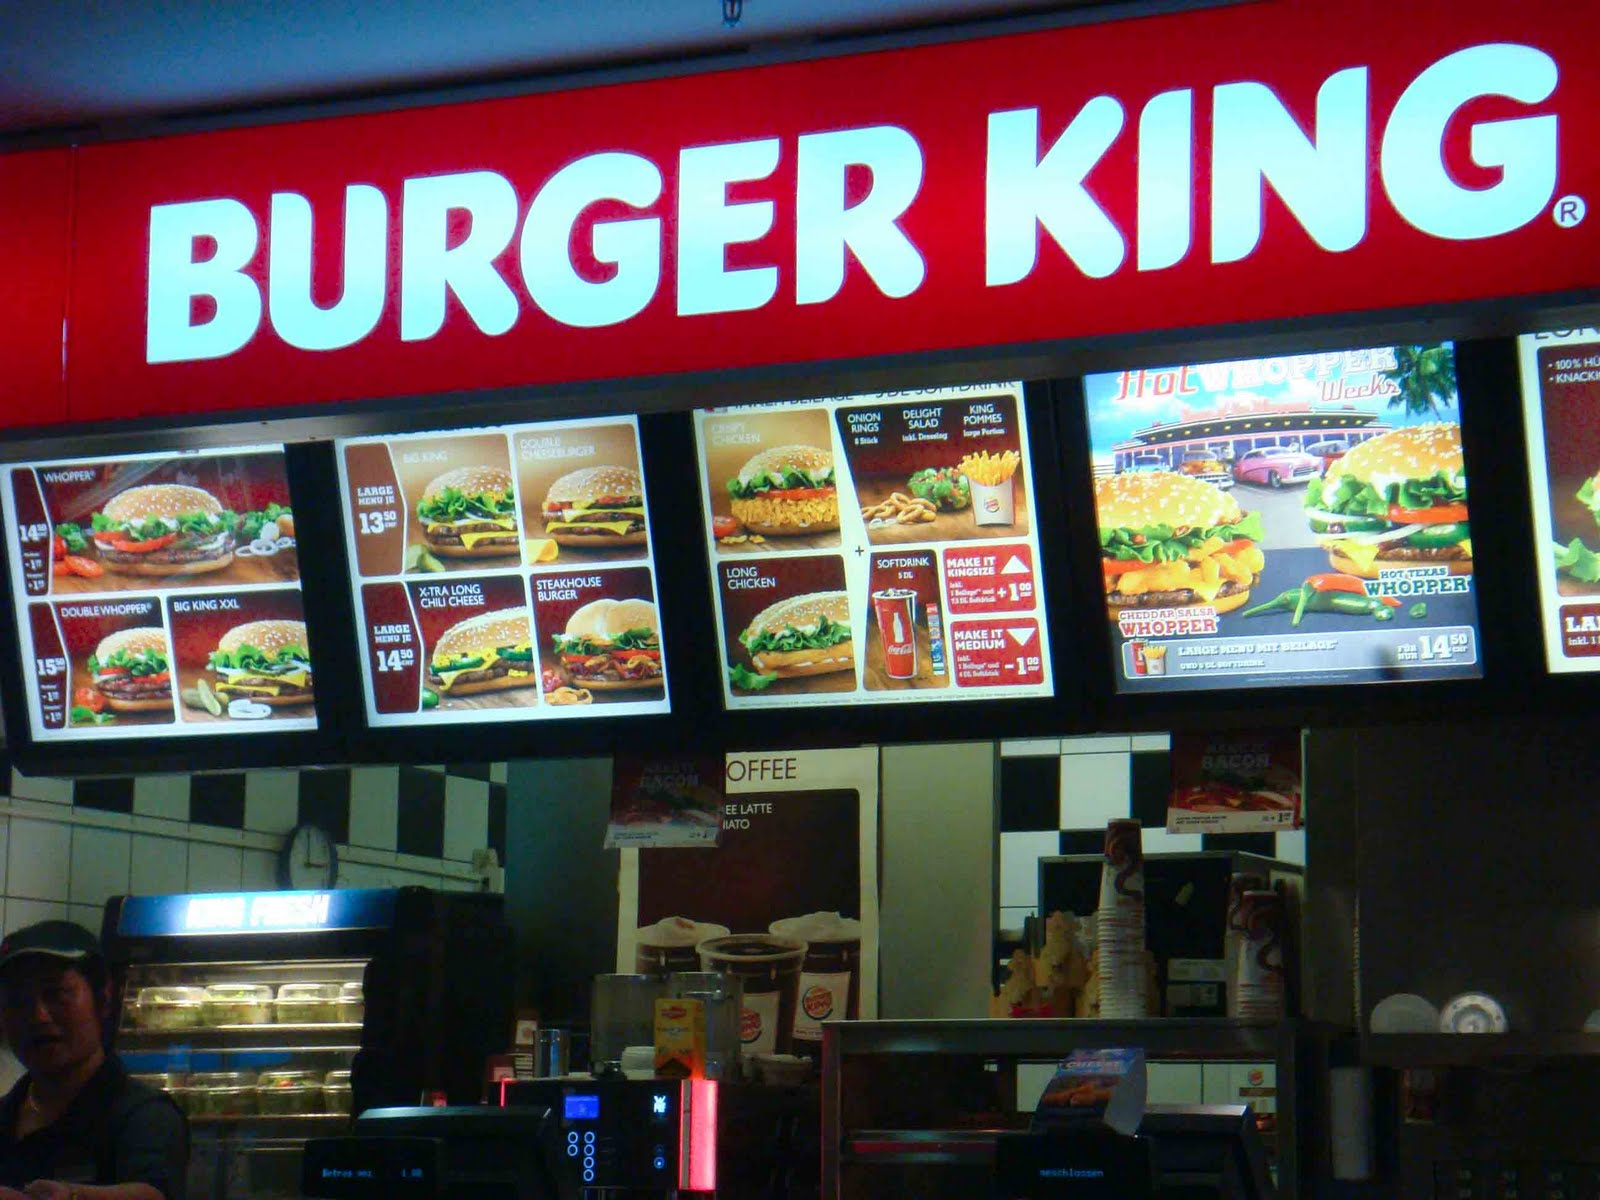 burger king in malaysia Tm & © 2016 burger king corporation used under license all rights reserved 750b, chai chee road, #03-02, viva business park, singapore 469002.